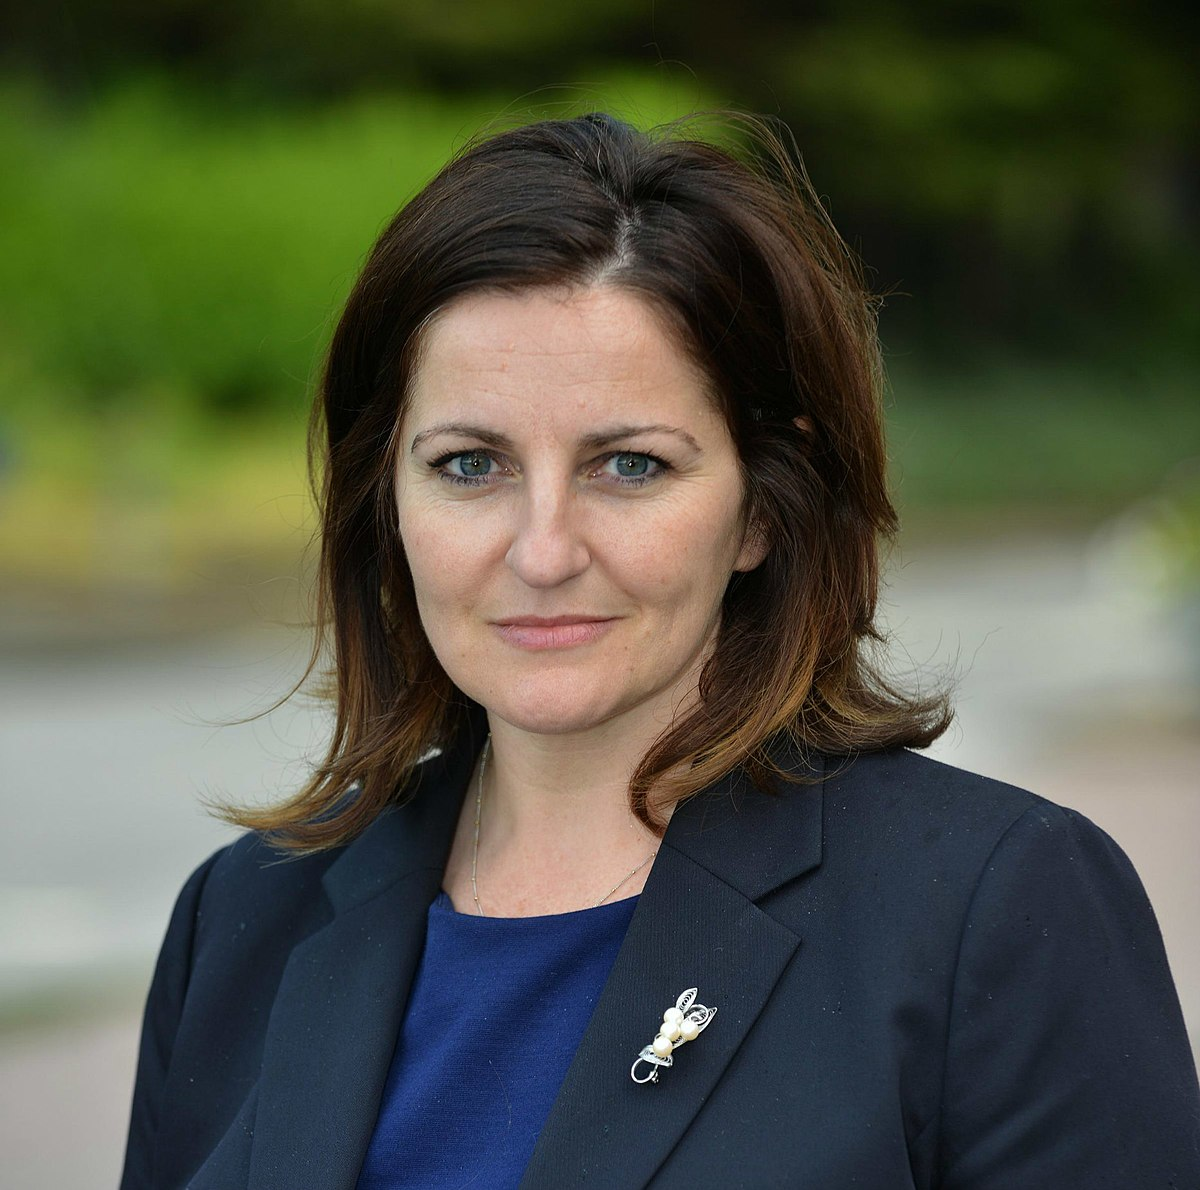 Caroline Ansell, MP for Eastbourne and Willingdon